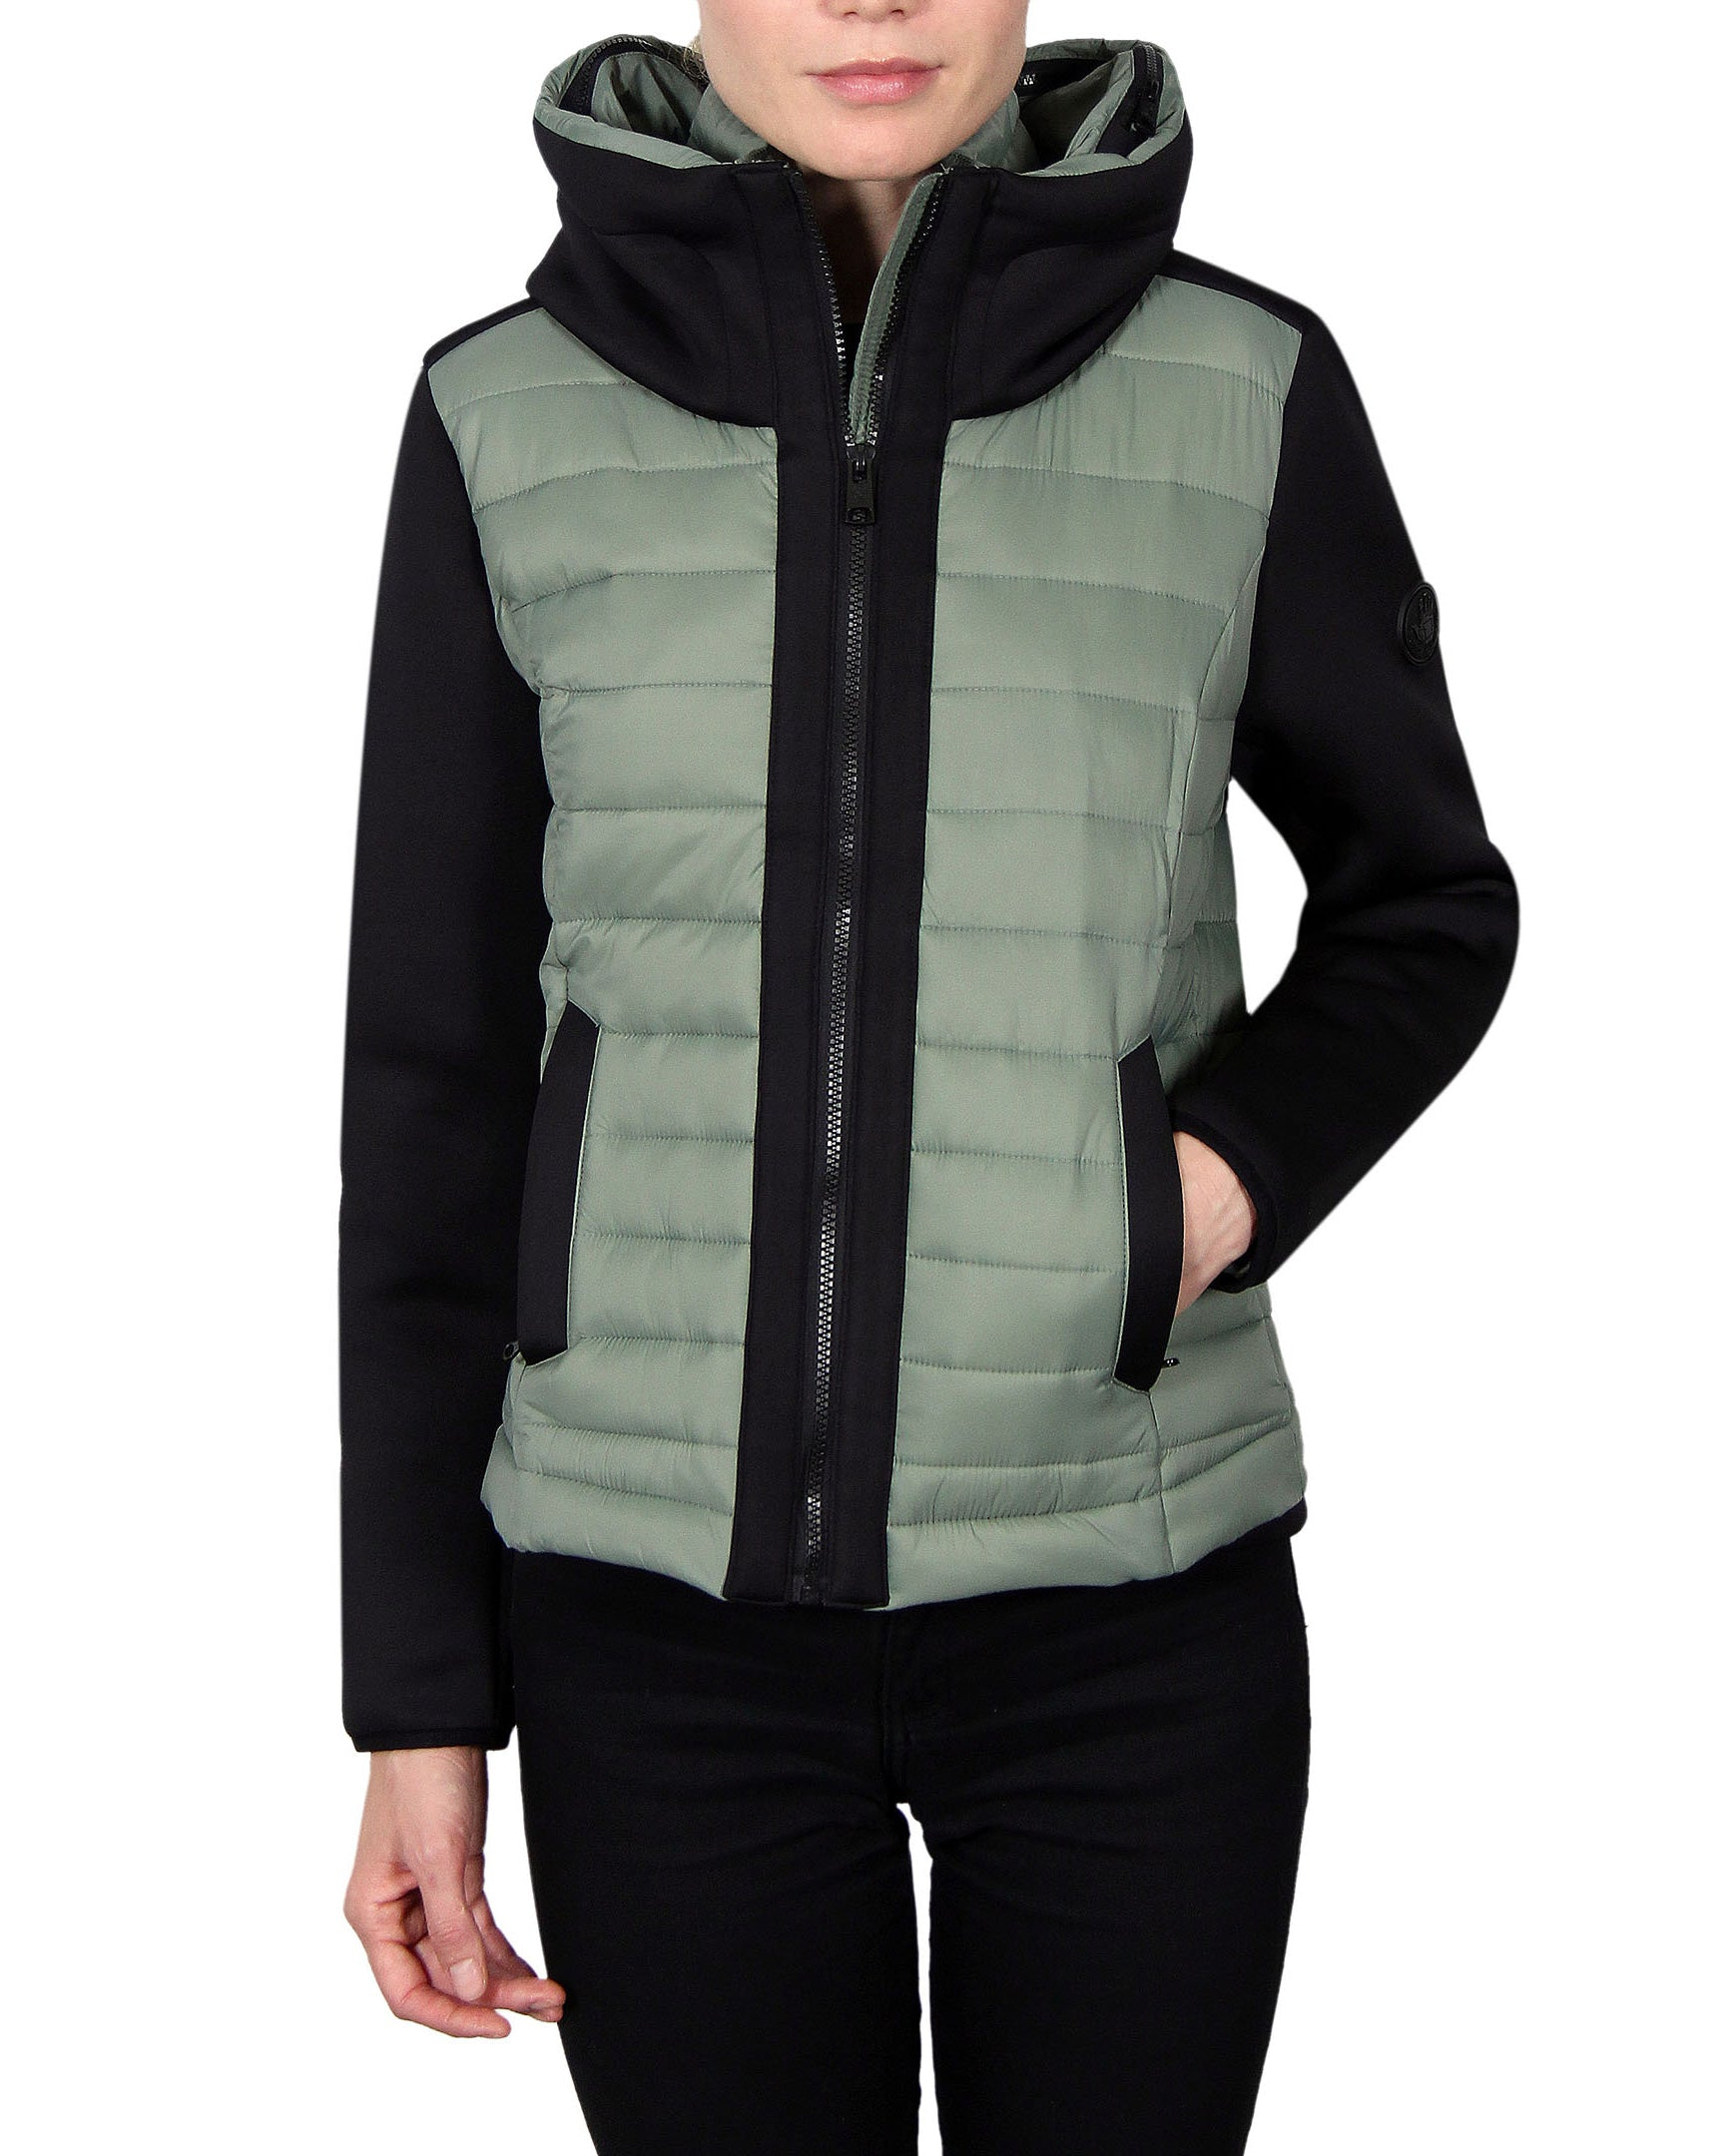 Women's Scuba-Stretch Hybrid Jacket - Agave/Black